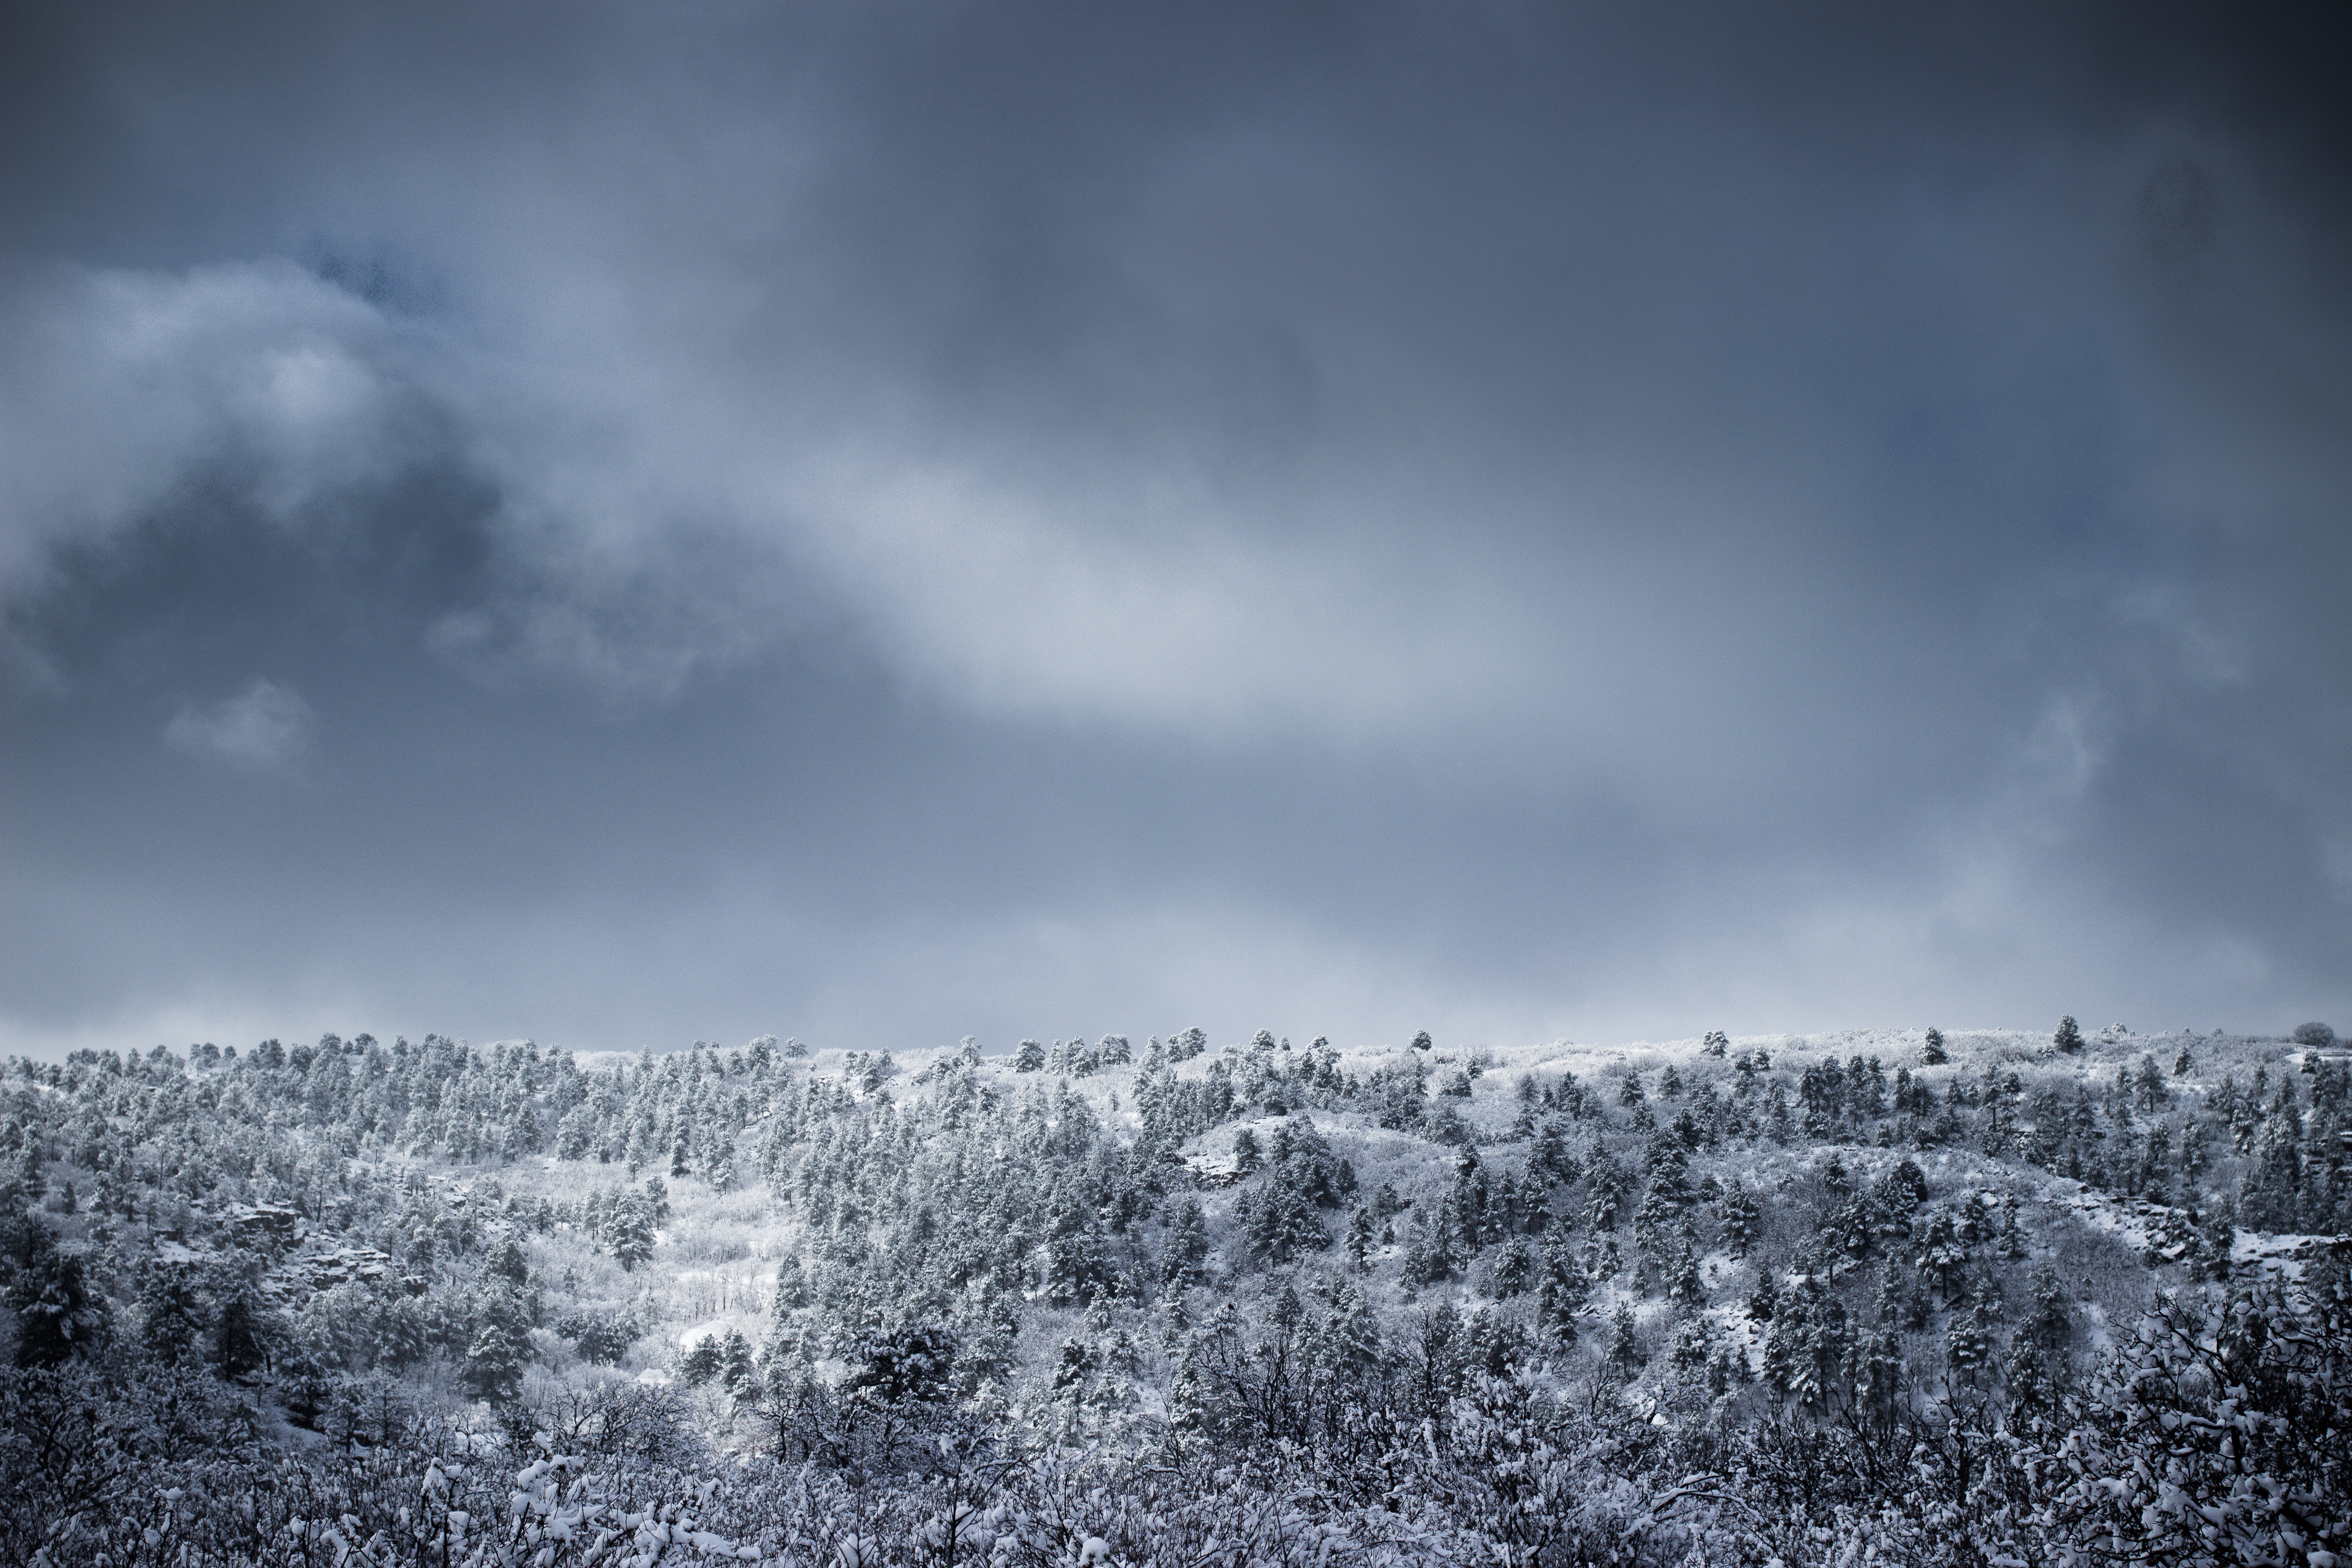 A coniferous forest stretching across a snowy hill